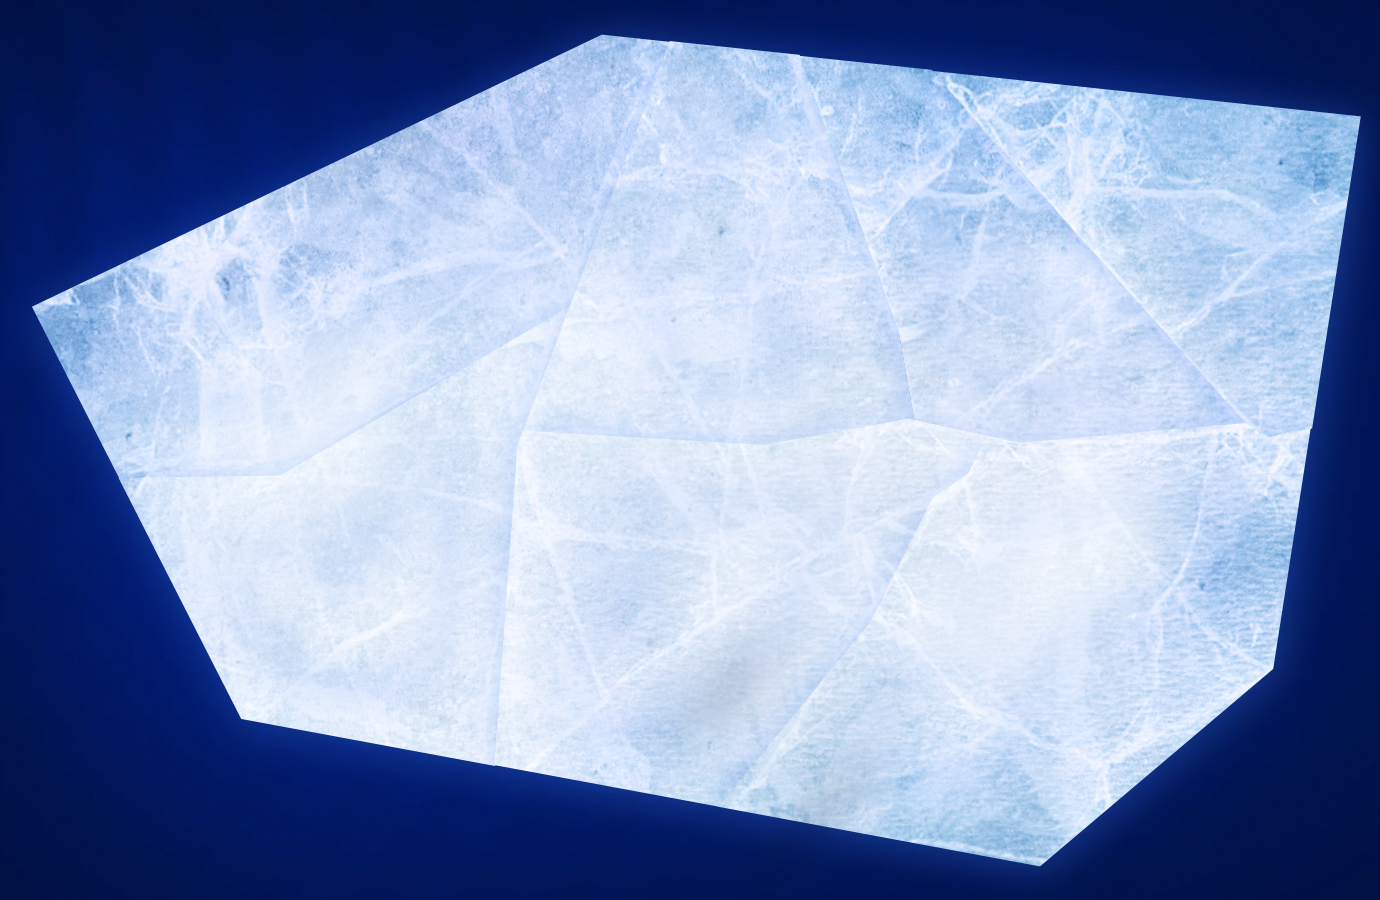 One of a series of ice floes, ready to crack apart.